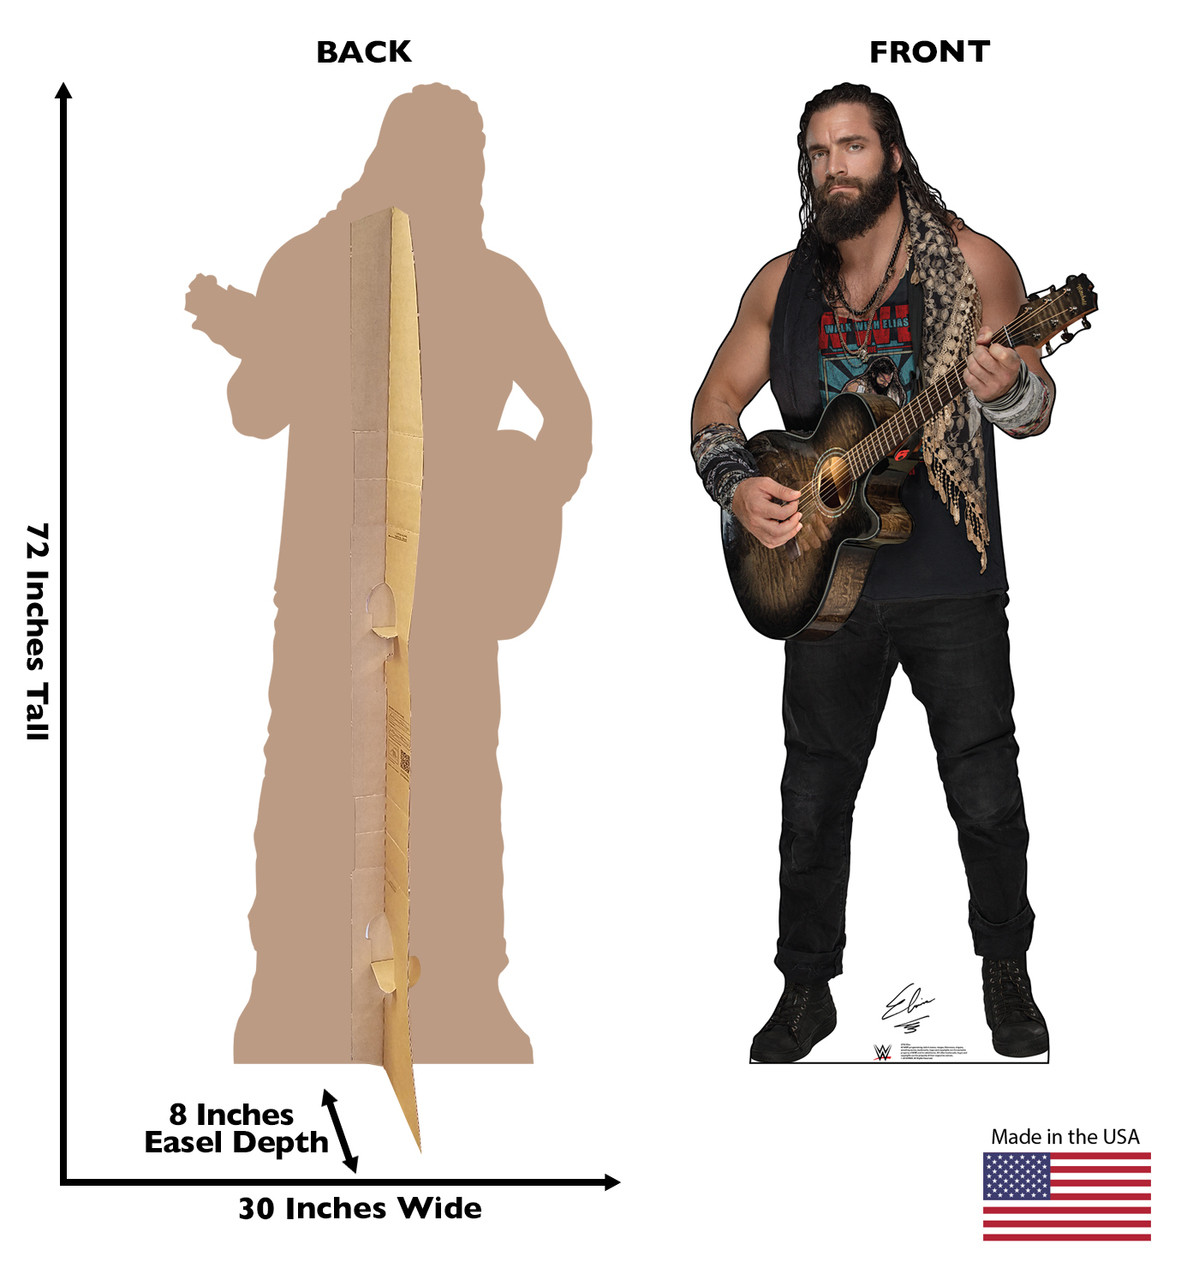 Eias Life-size cardboard standee front and back with dimensions.